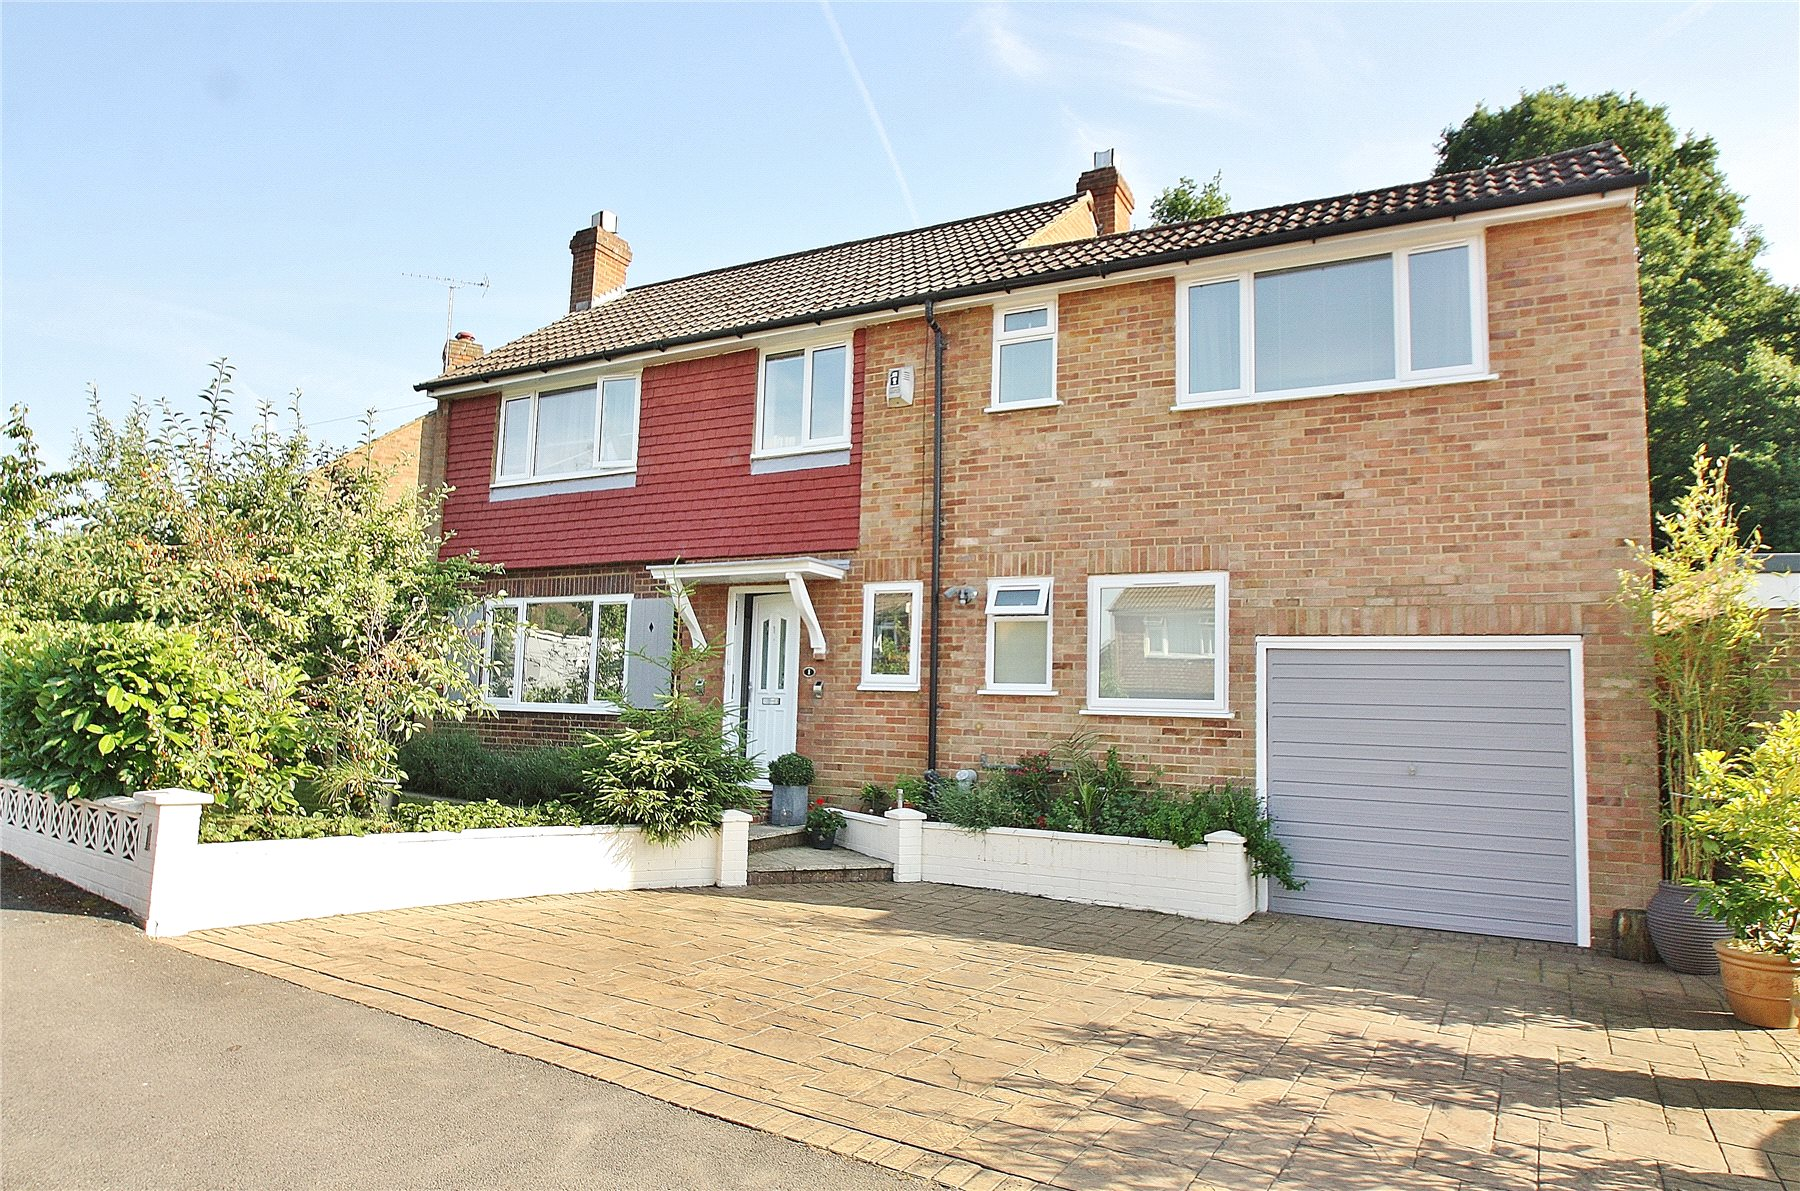 4 Bedrooms Detached House for sale in Elmwood Road, Woking, Surrey, GU21